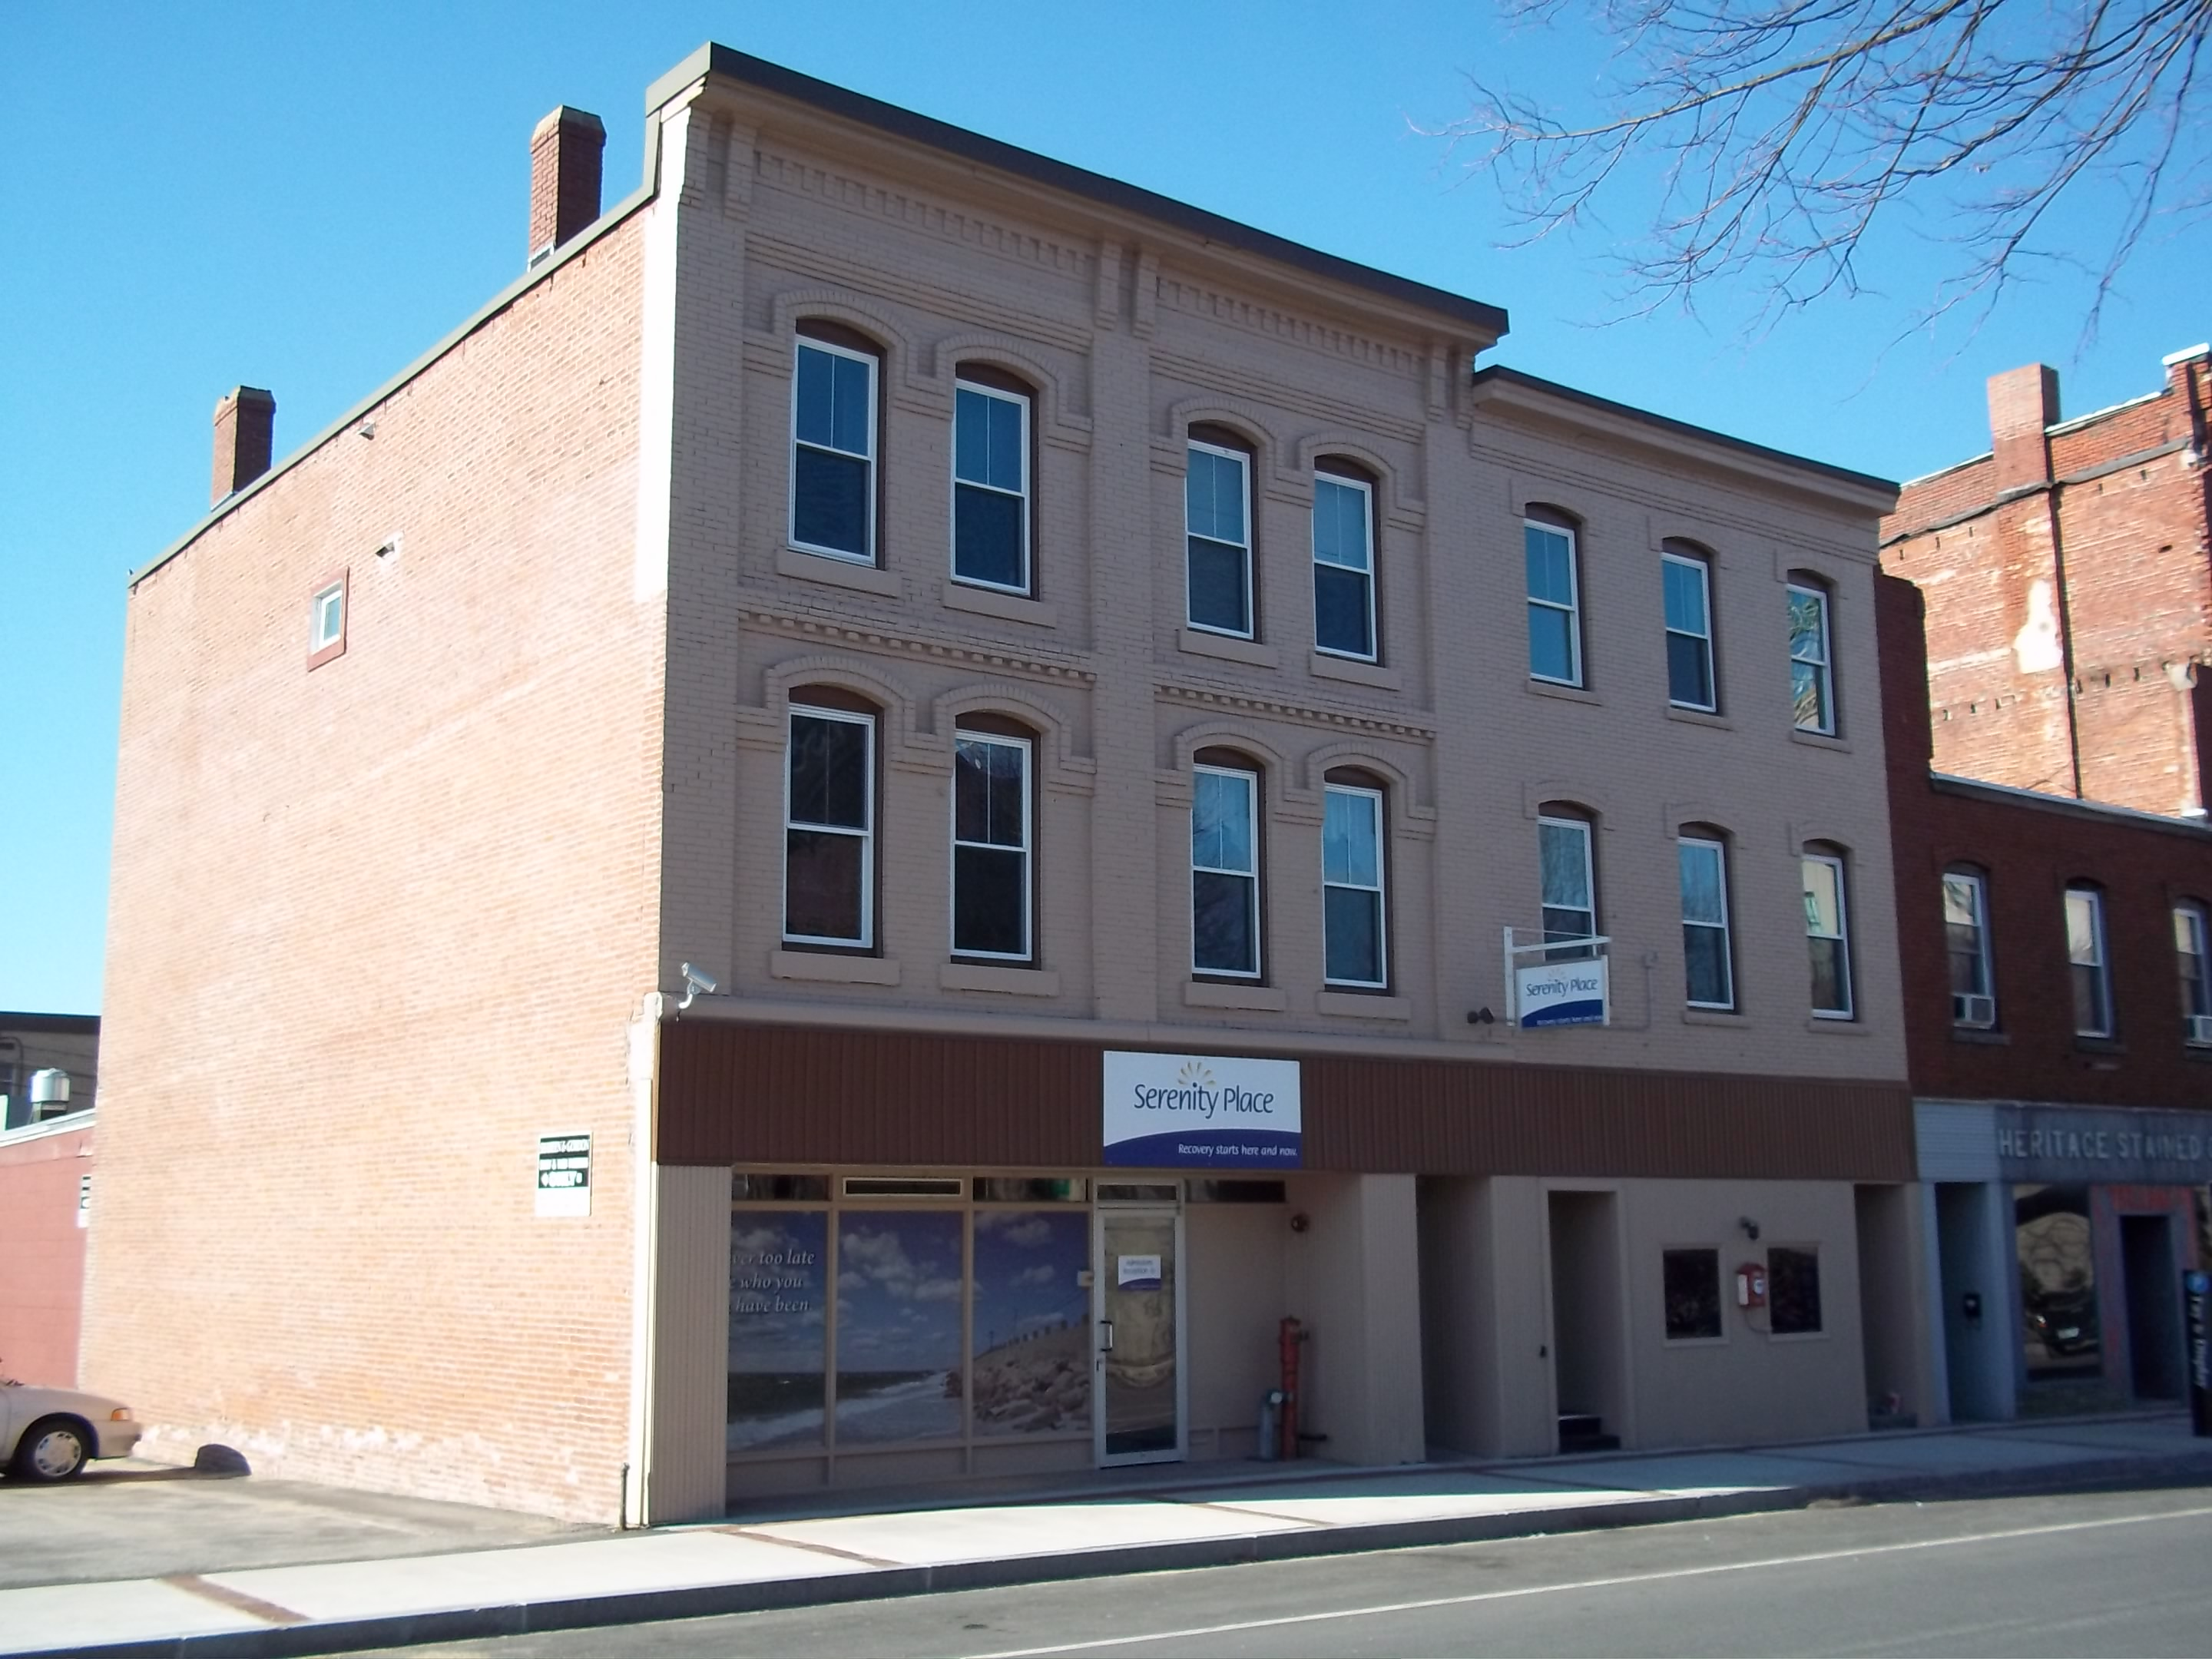 99 Manchester St., Manchester, NH - For Lease